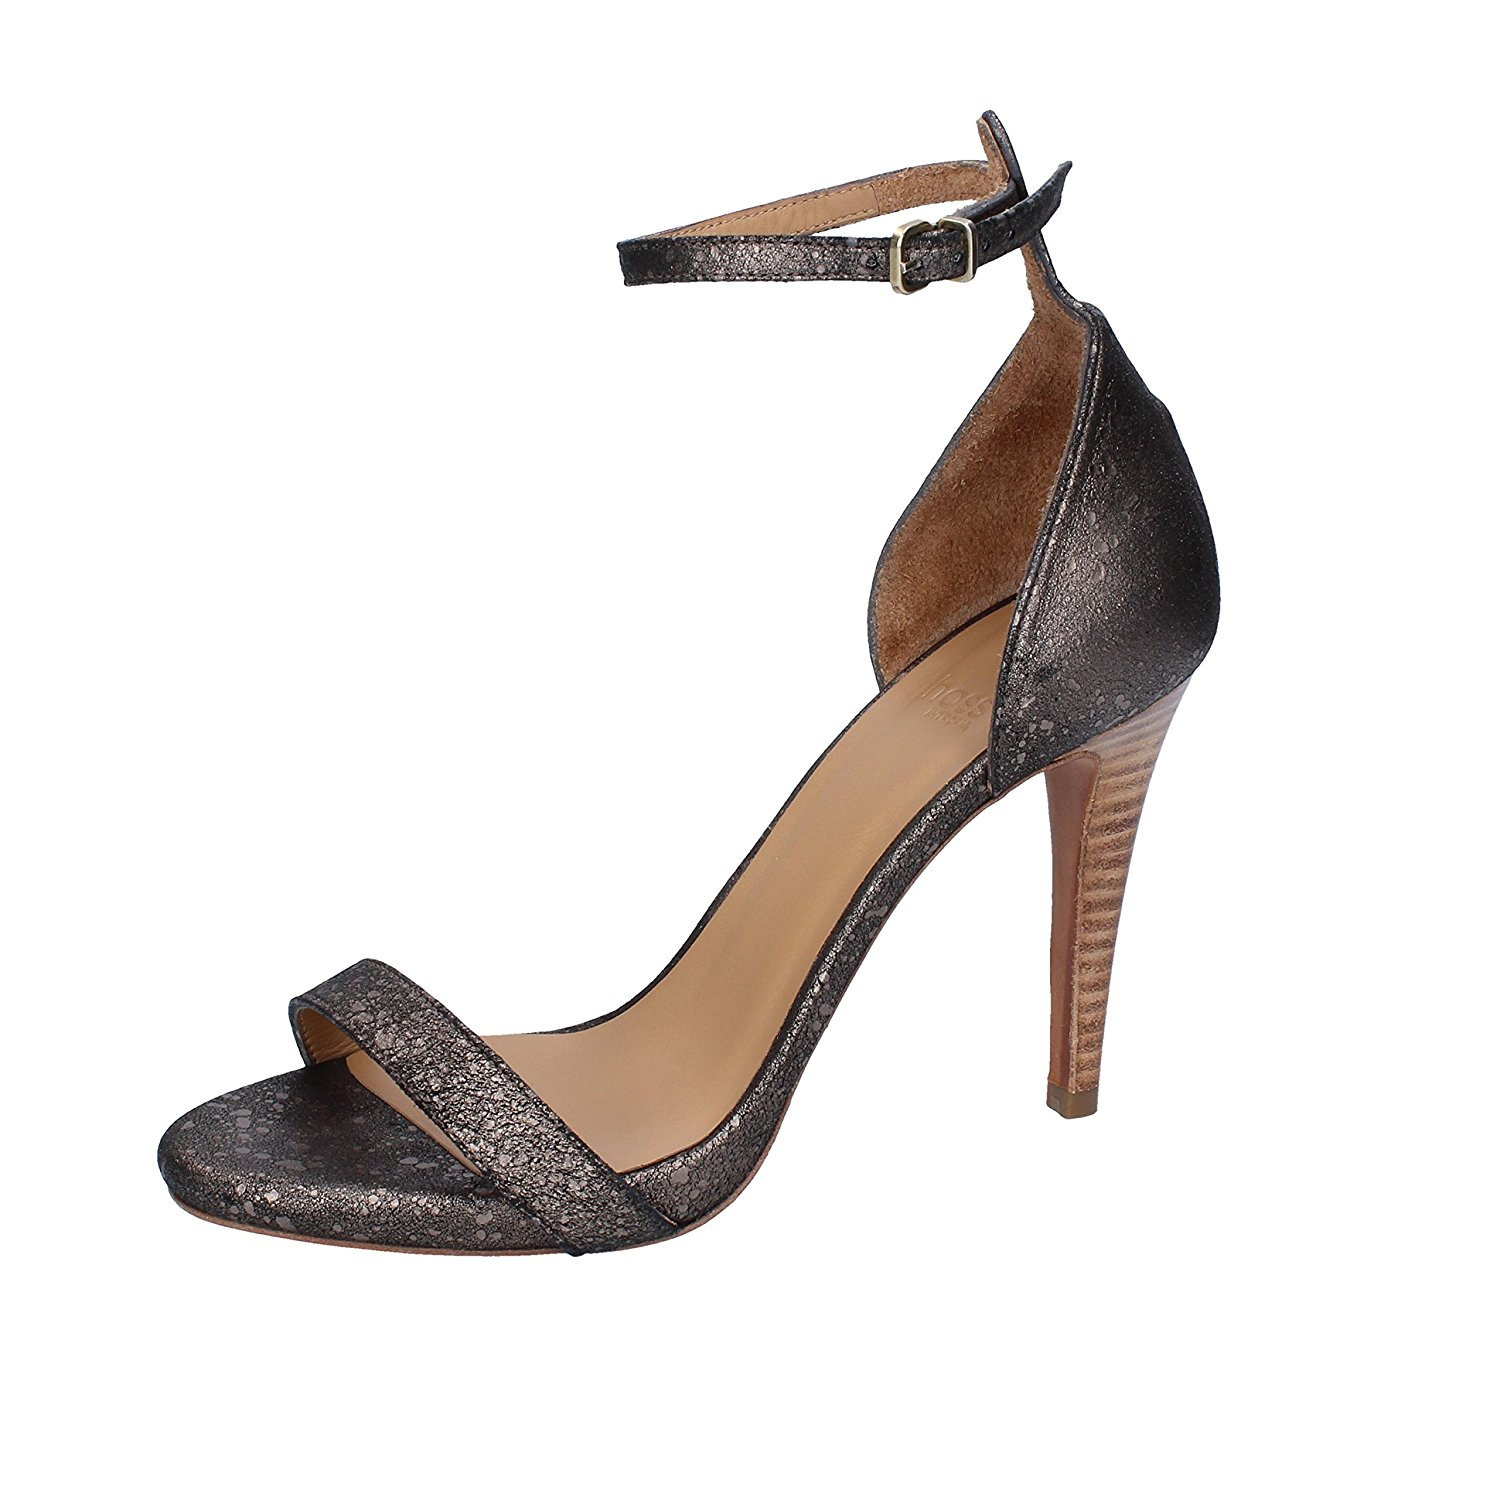 9bbb69c10ac Get Quotations · HOSS Sandals Woman 6 US  36 EU Gray Anthracite Leather  Suede